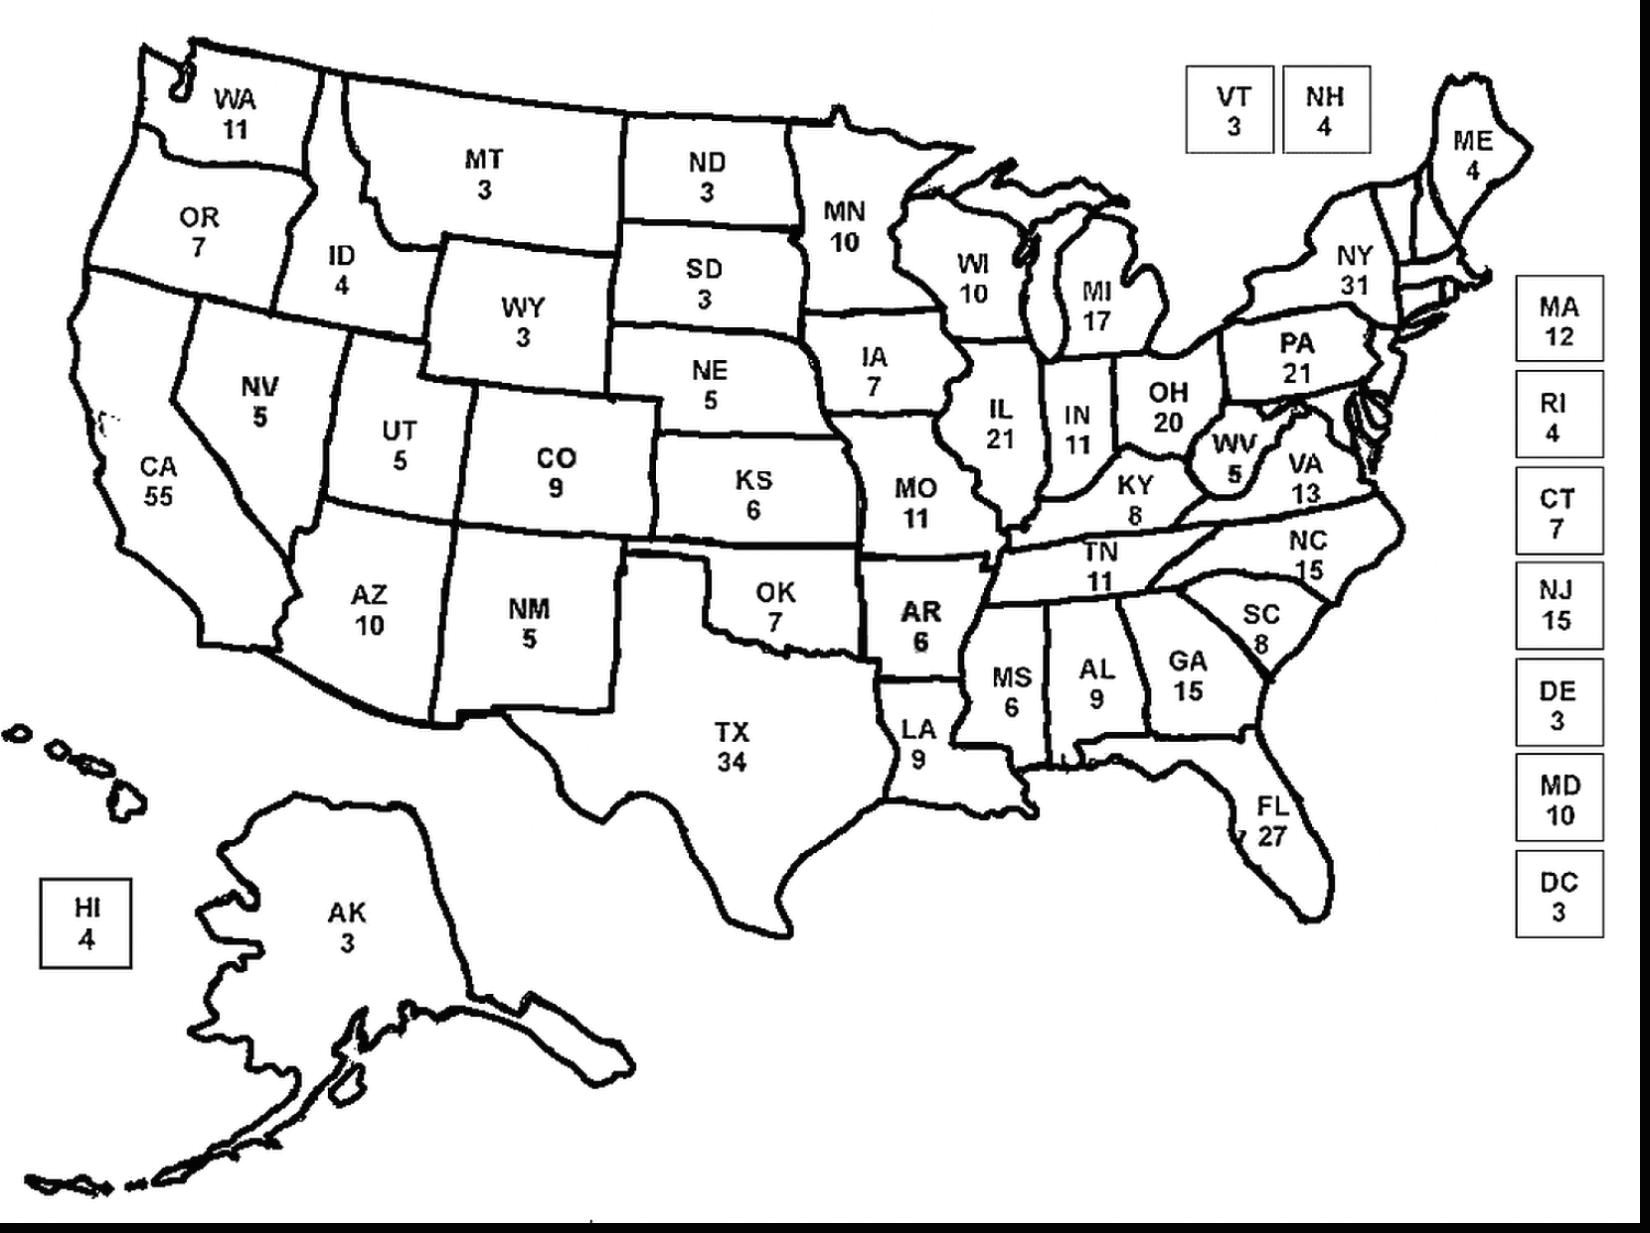 united states map drawing valid drawings the united states map 2018 34 unique united states map